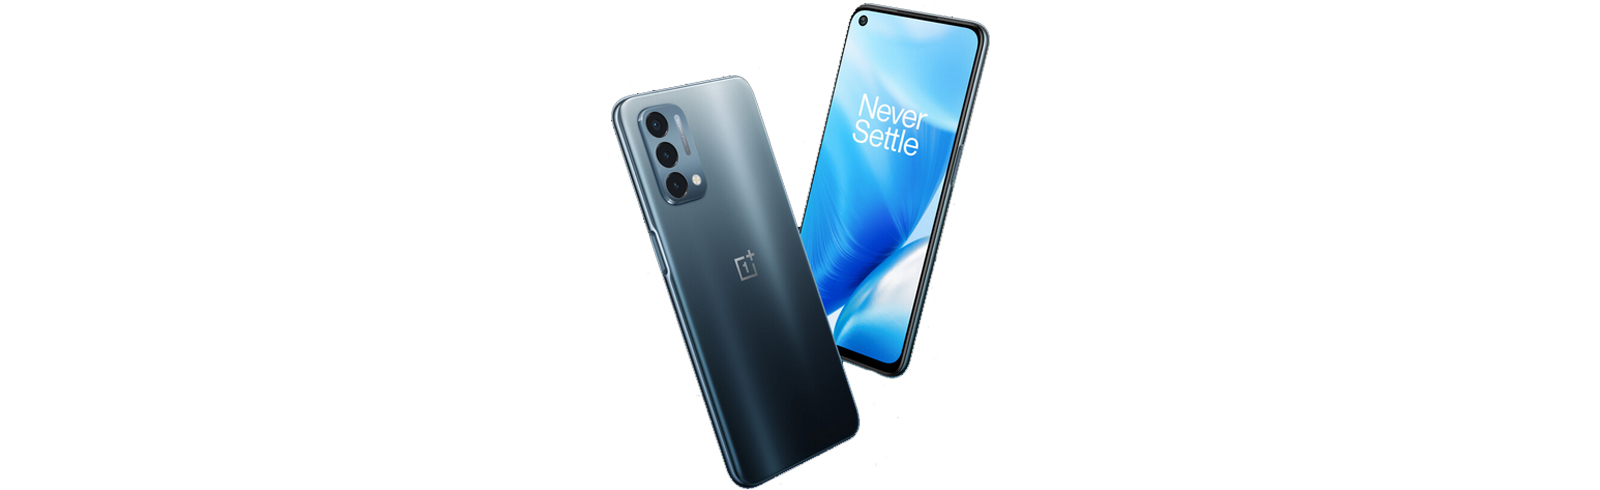 """OnePlus Nord N200 5G is unveiled with a 6.49"""" FHD+ display, 90Hz refresh rate and Snapdragon 480G chipset"""